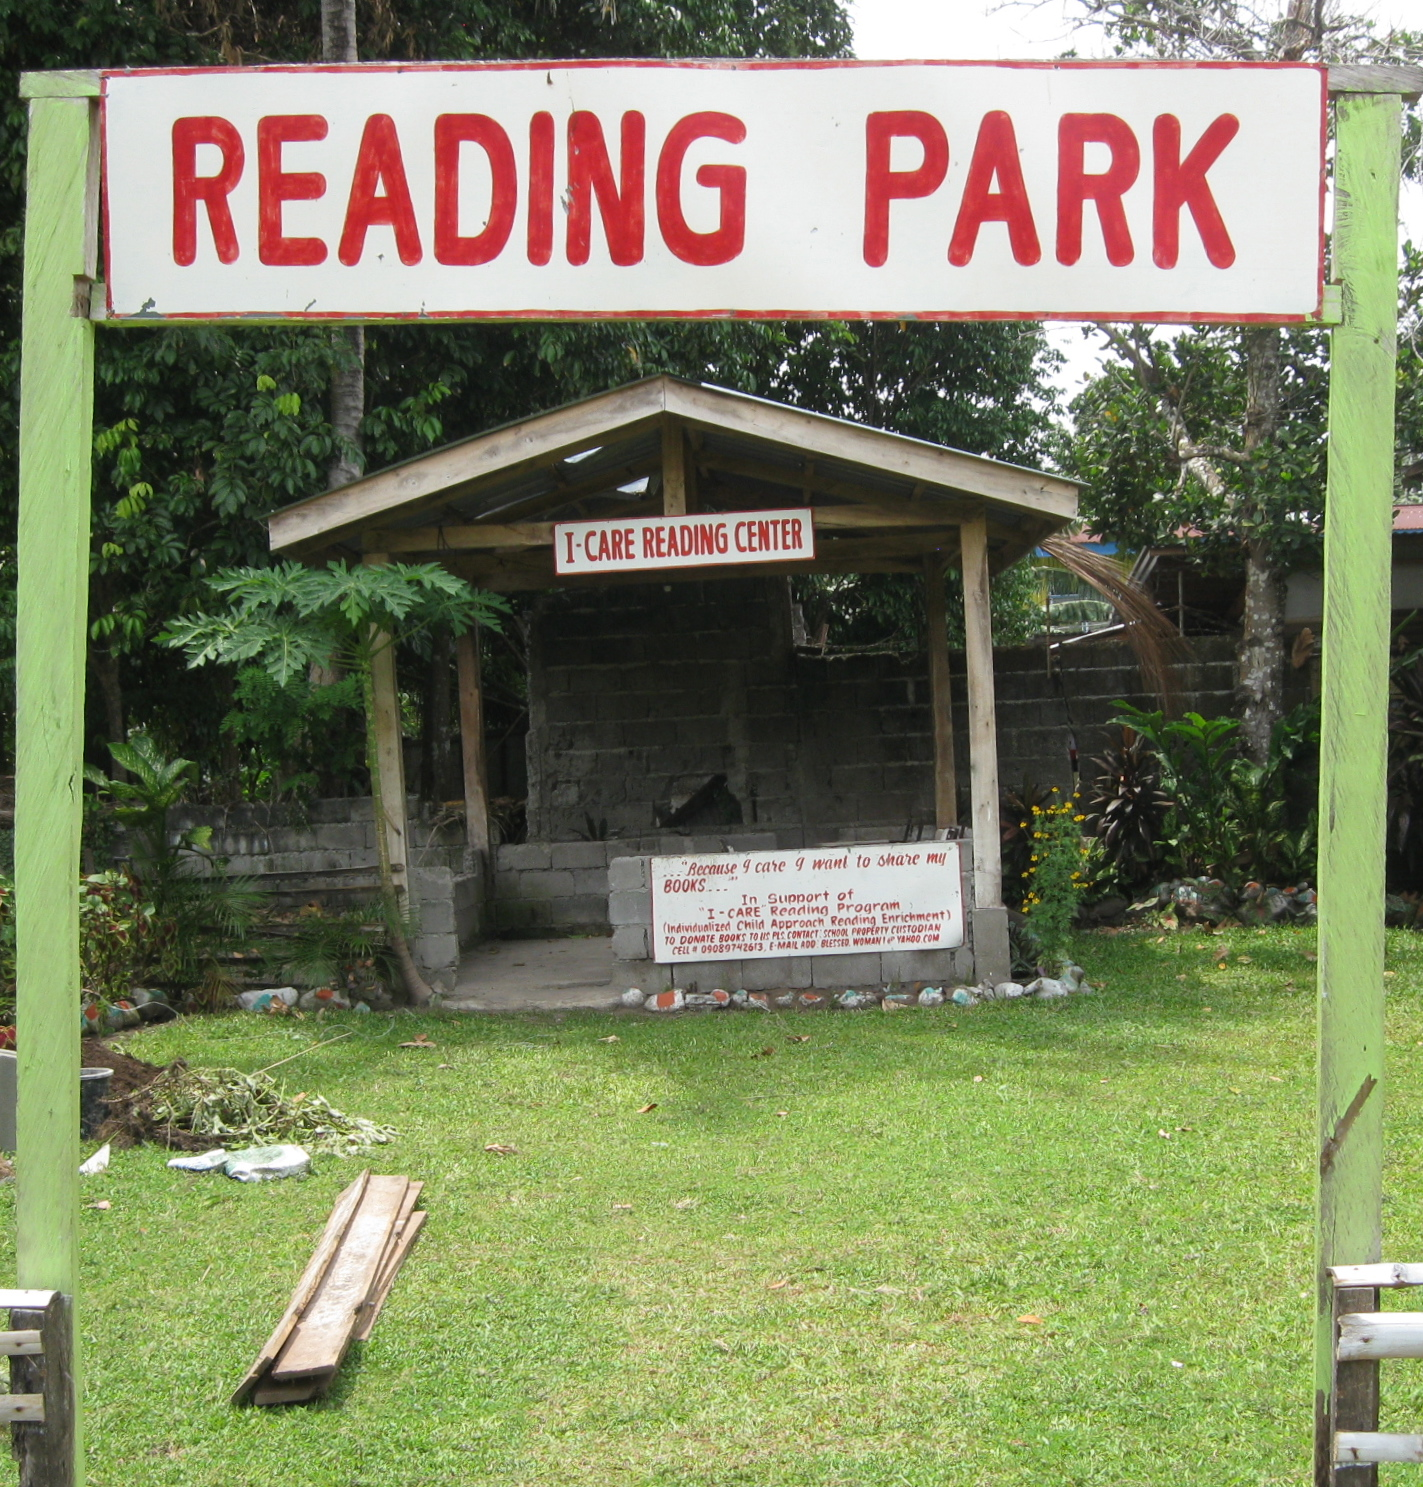 filipino librarian  even though the reading park sign could be seen from the road i did not see the banner asking for book donations even though it was written in big